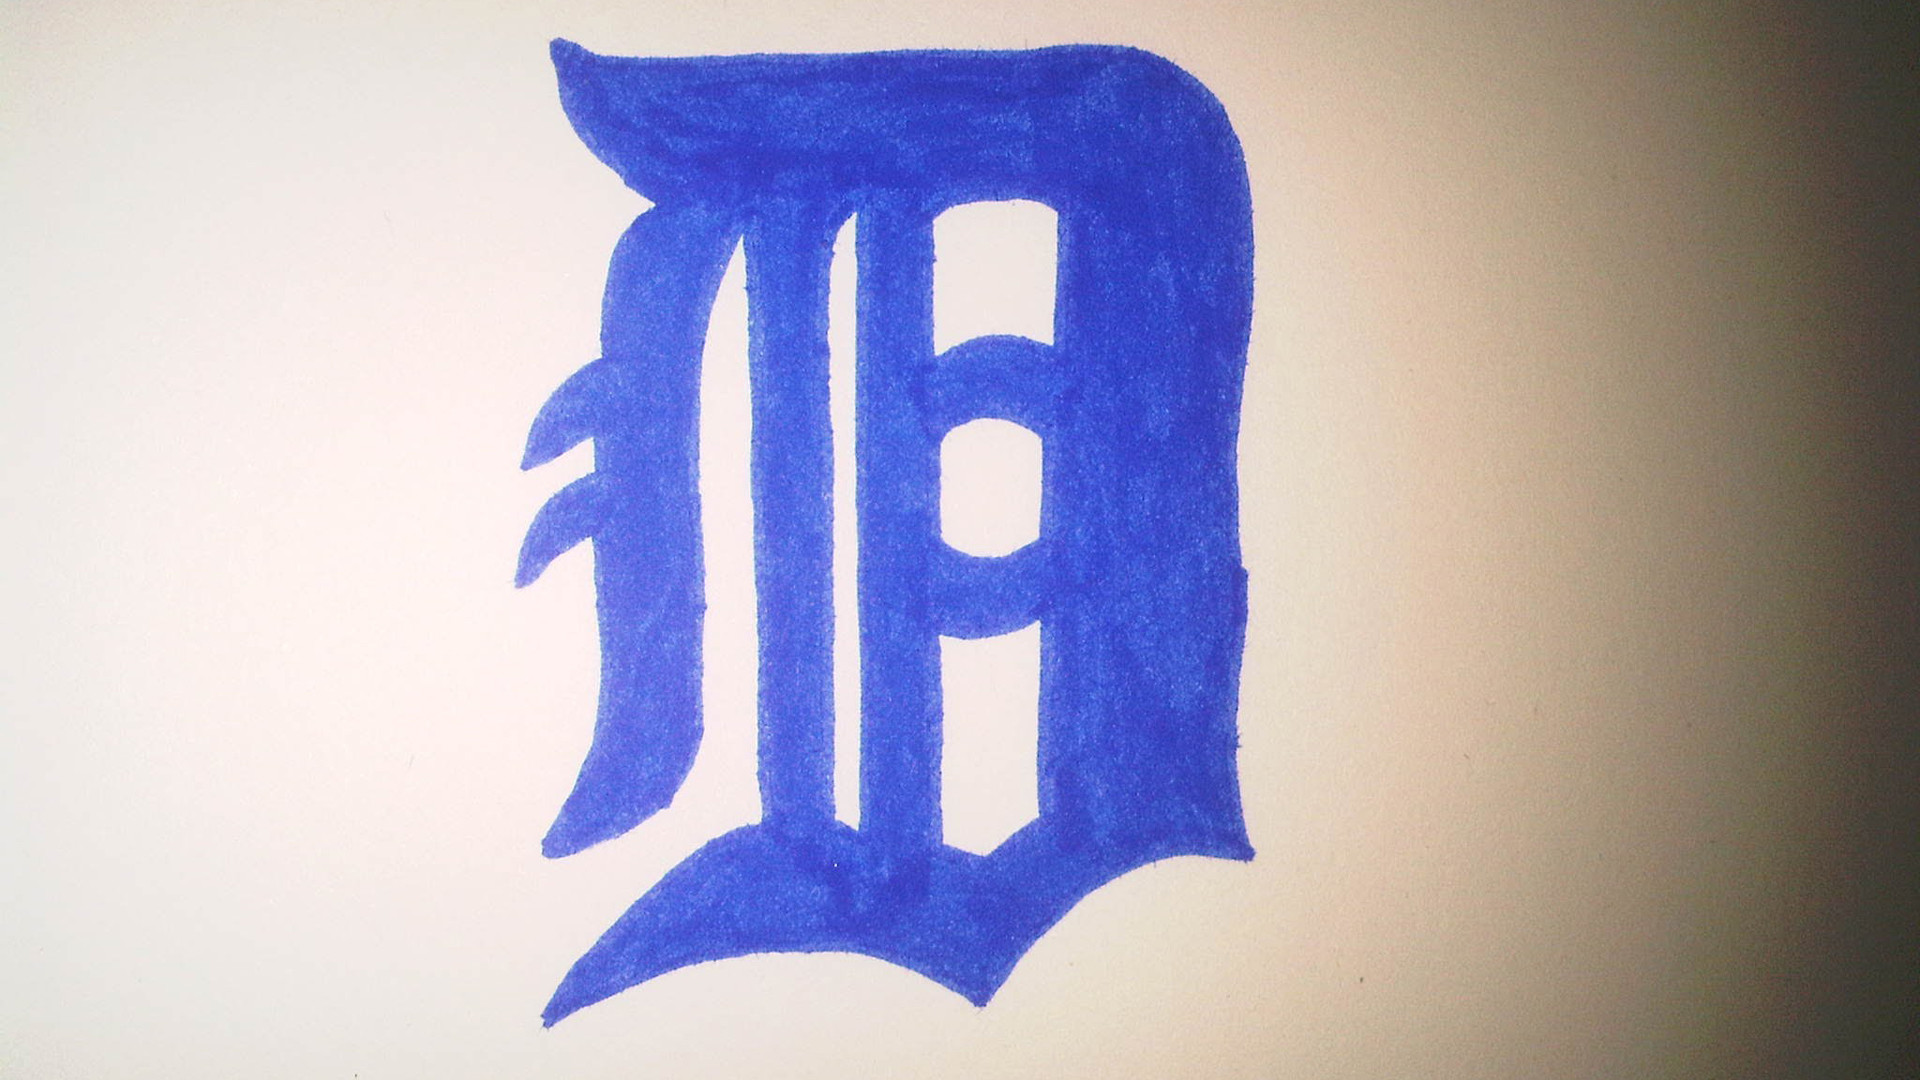 Detroit Tigers Wallpapers And Backgrounds